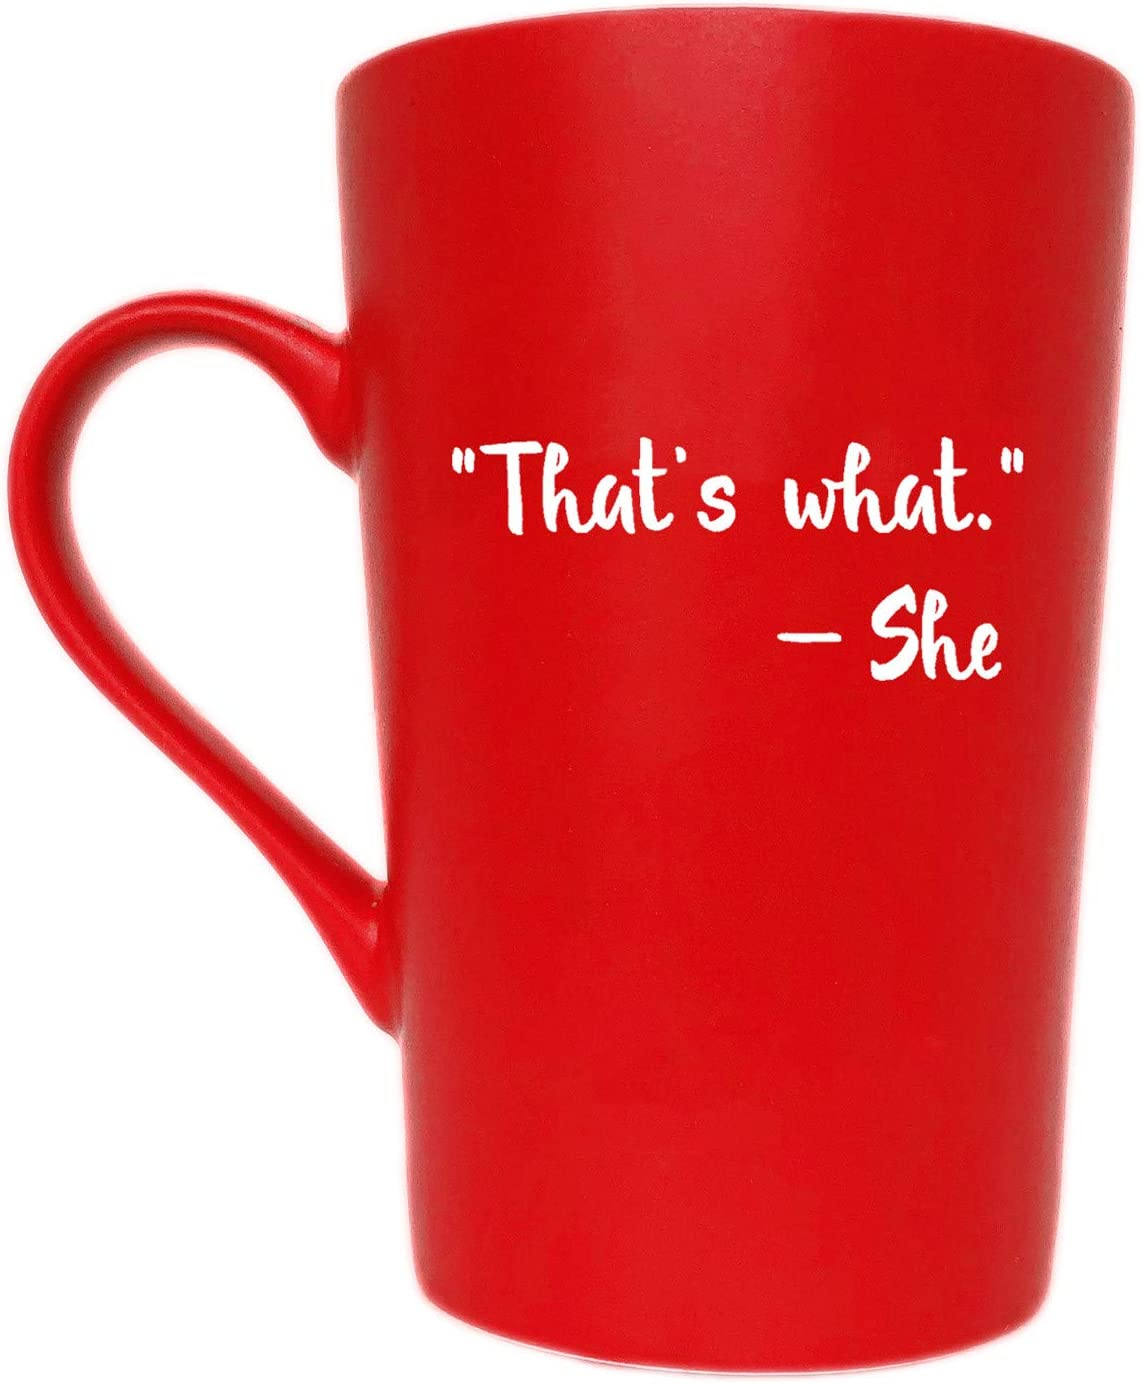 MAUAG Christmas Gifts Funny Inspirational Office Coffee Mug for Friend Coworker, That's What She Cute Present Fun Cup Red, 12 Oz